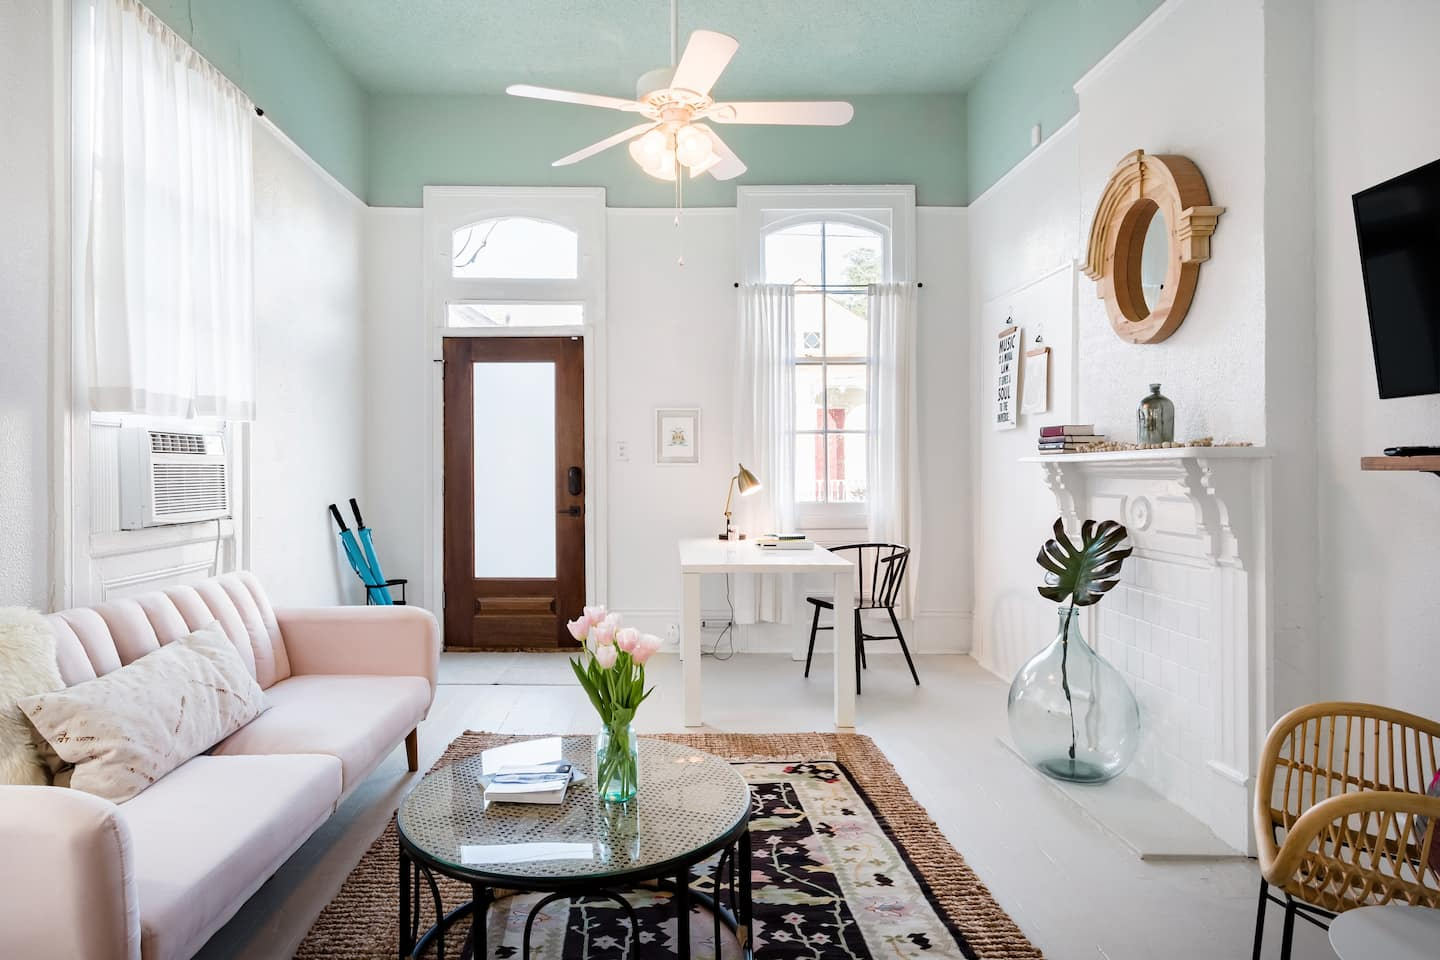 Best Airbnb in New Orelans Treme